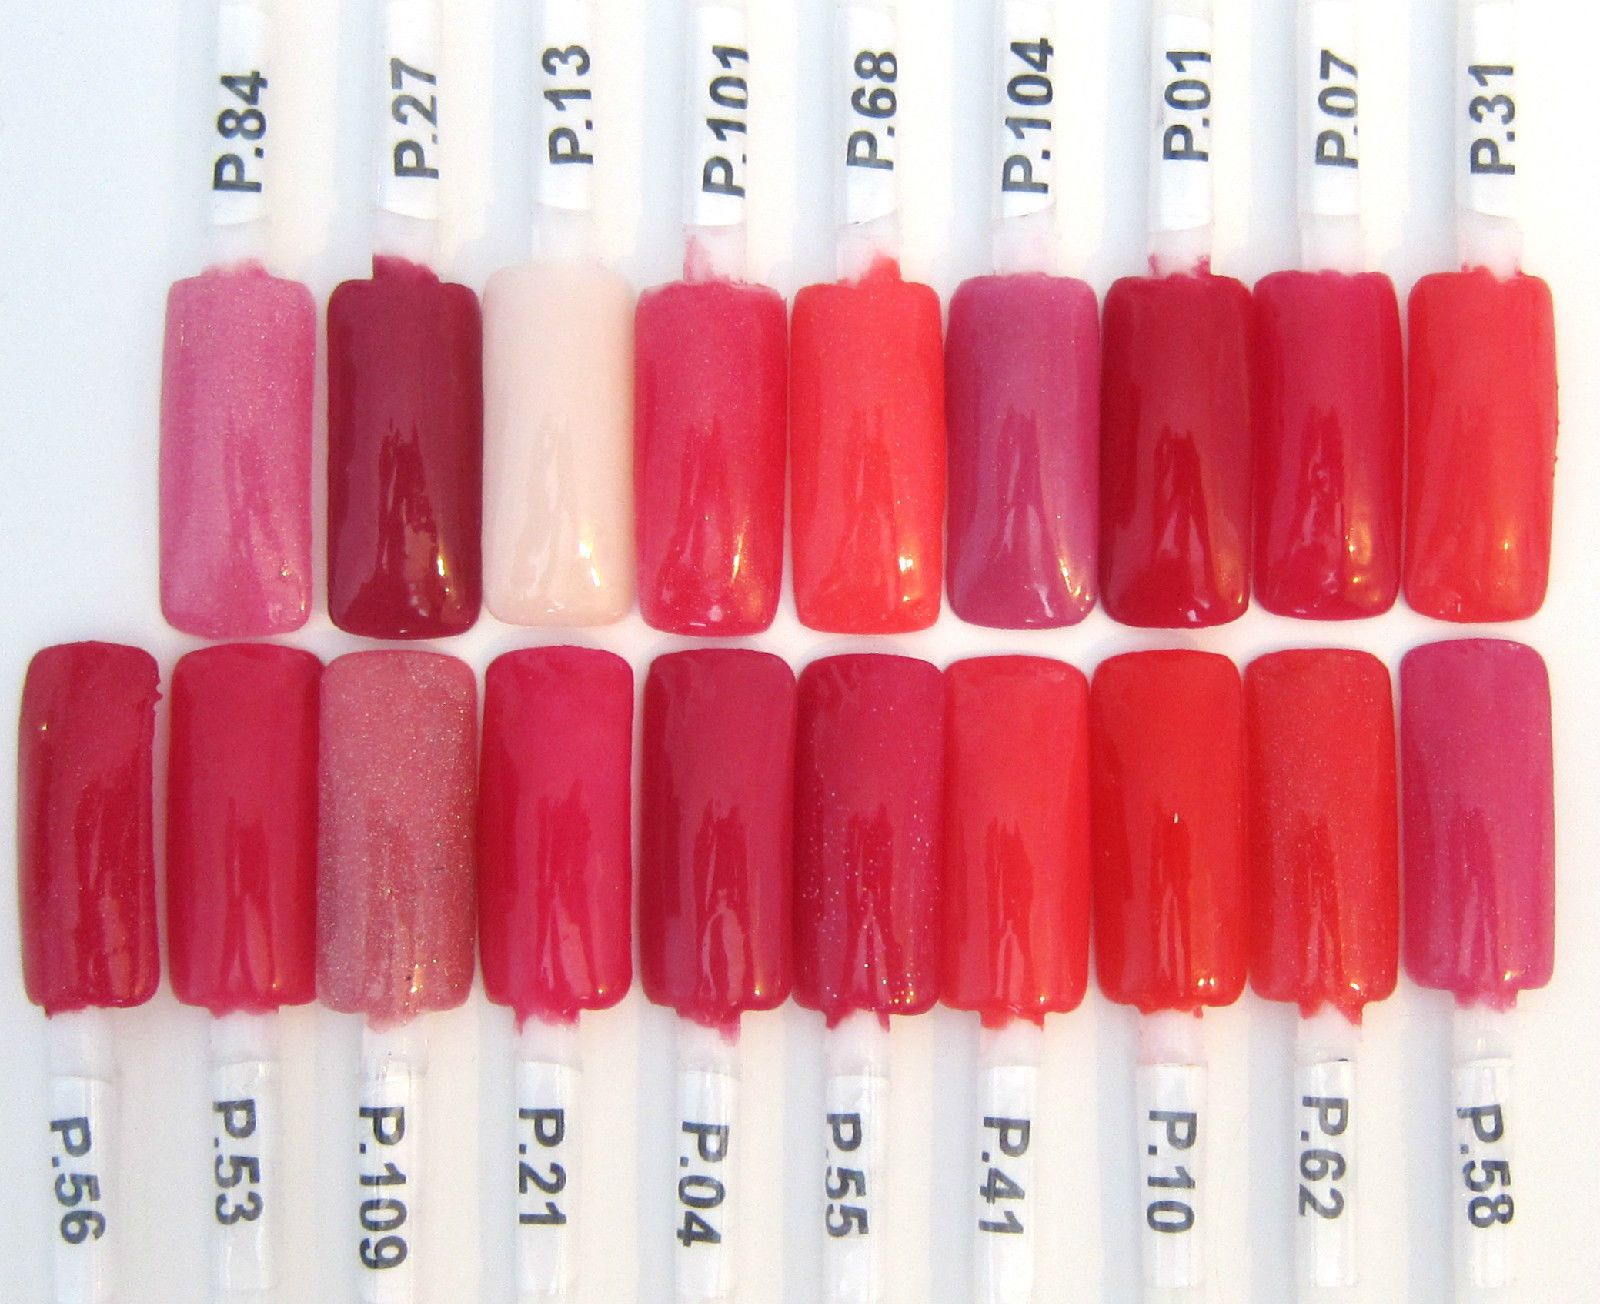 EZ Dip color chart: Fuchsias | Dip Nails Color Swatches | Pinterest ...